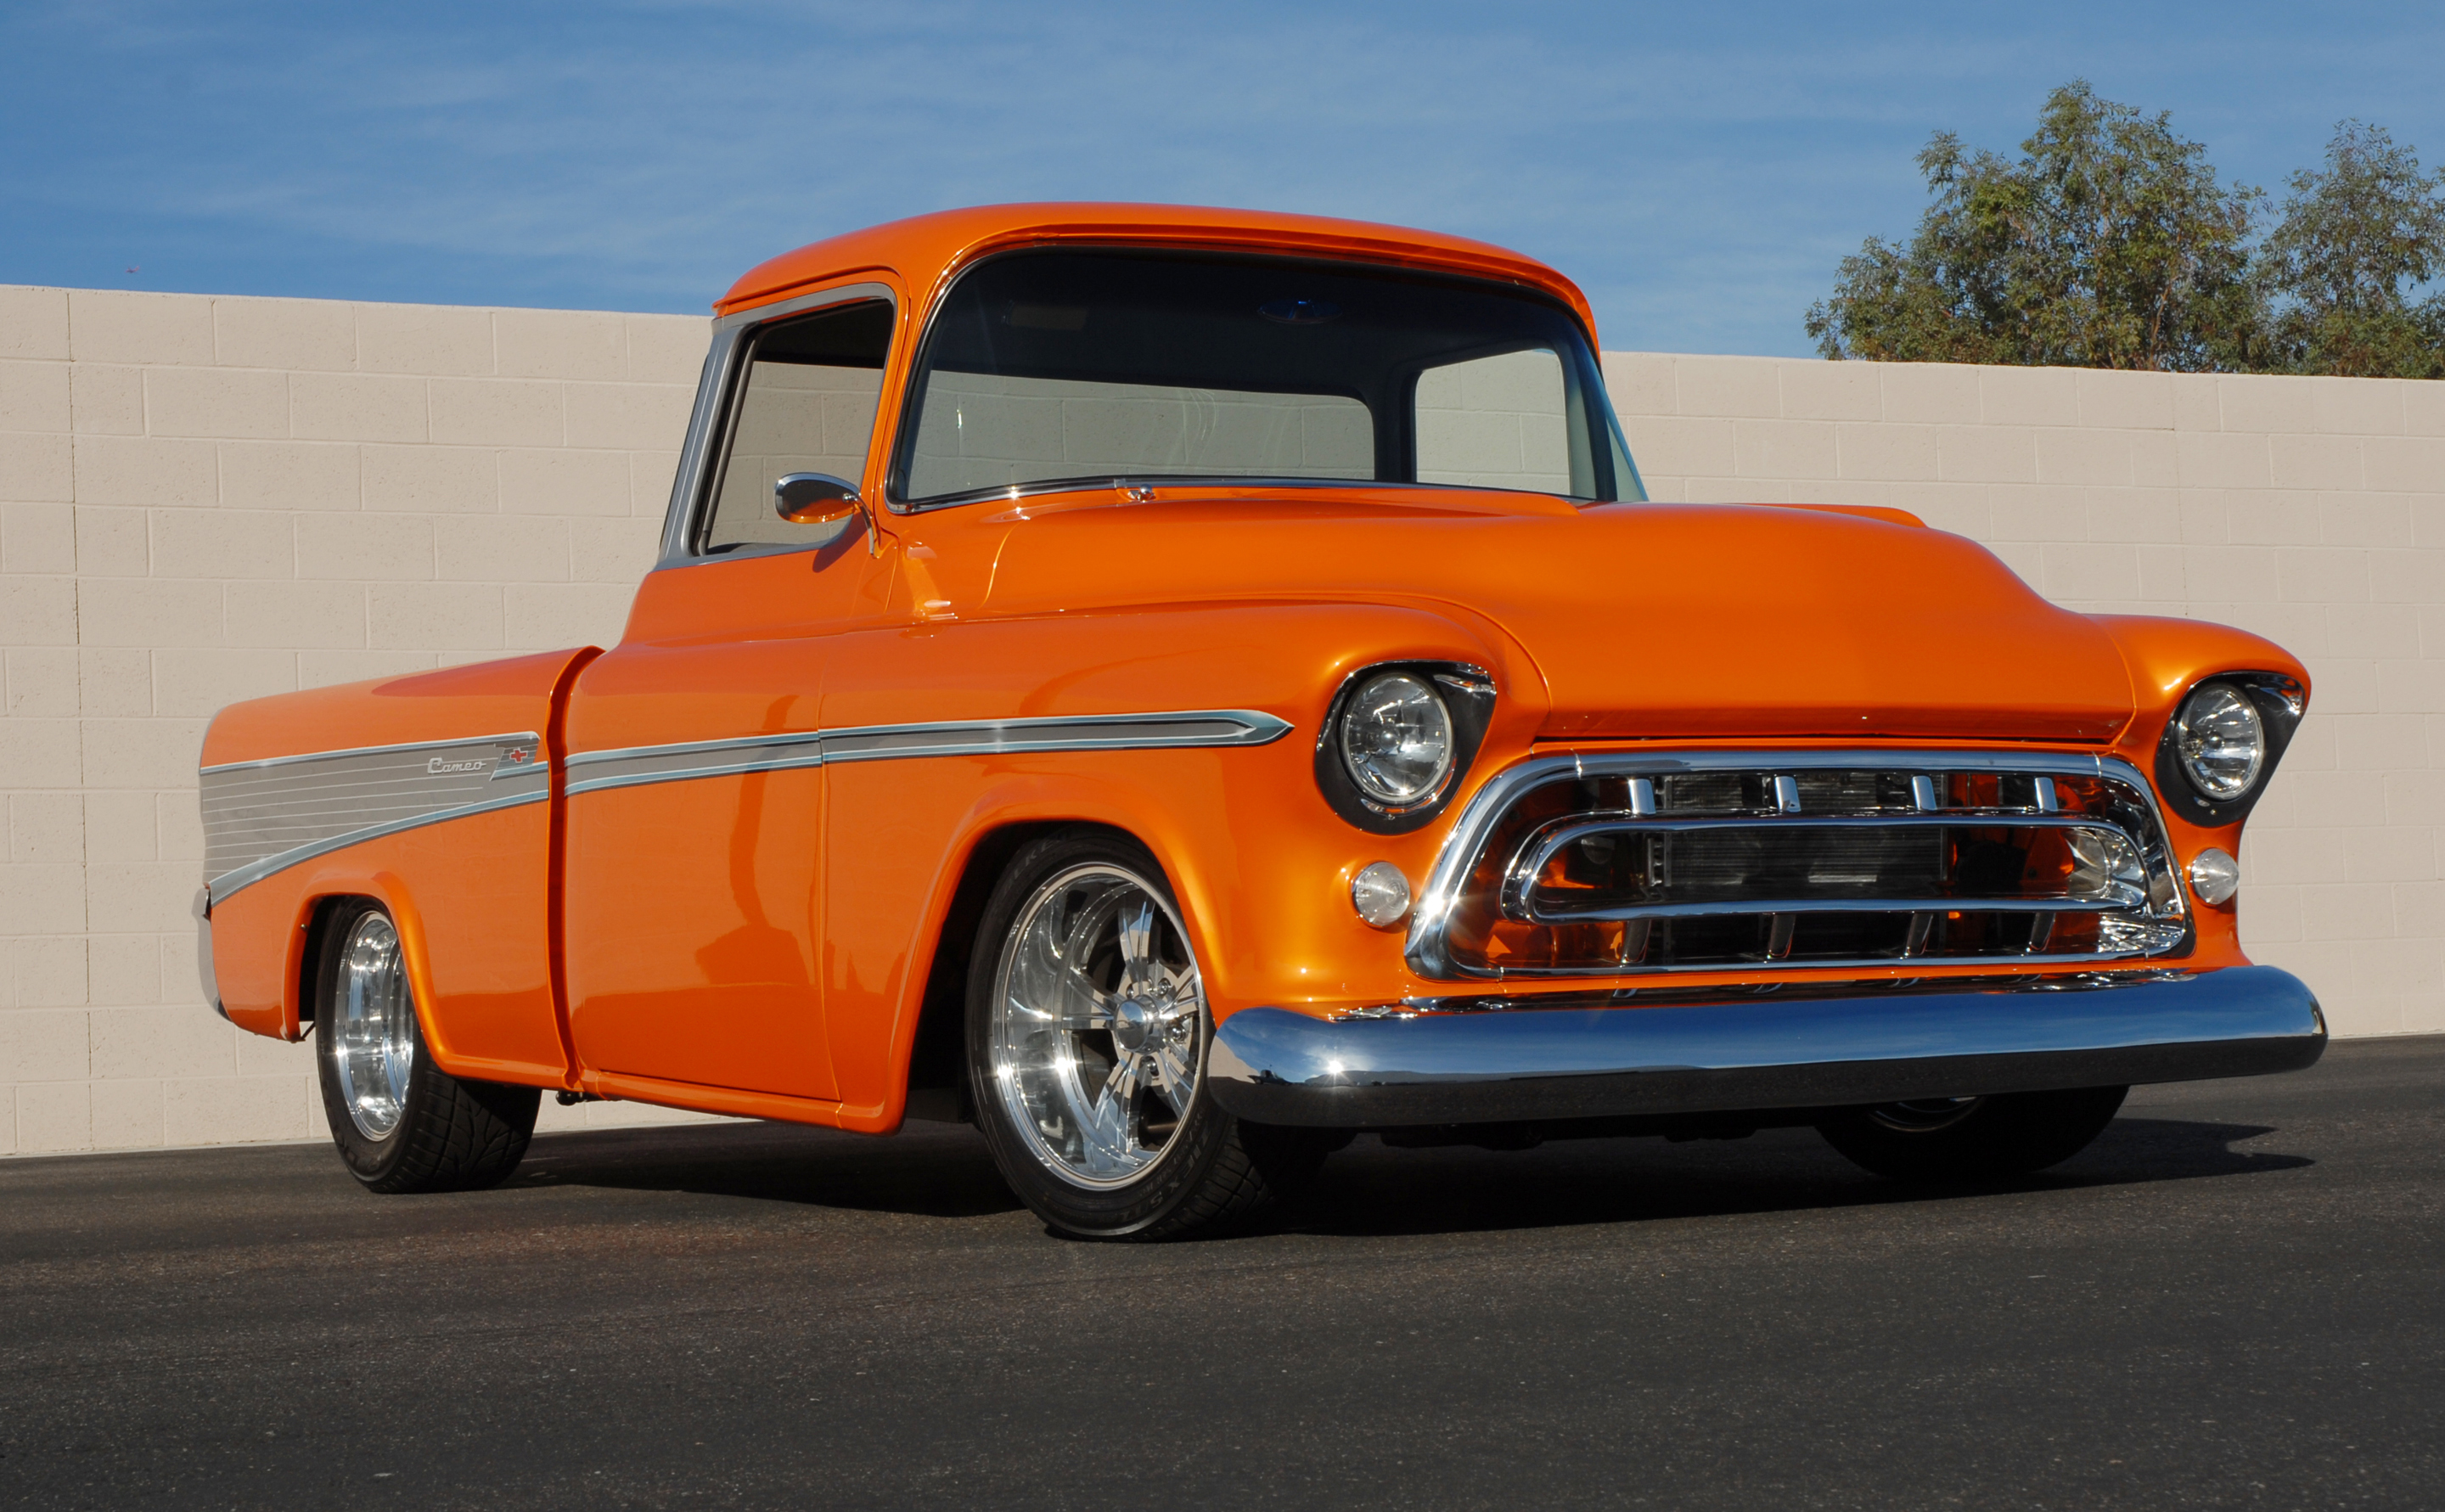 3. 1957 Chevrolet Cameo Pickup, sold for $159,500 in 2007